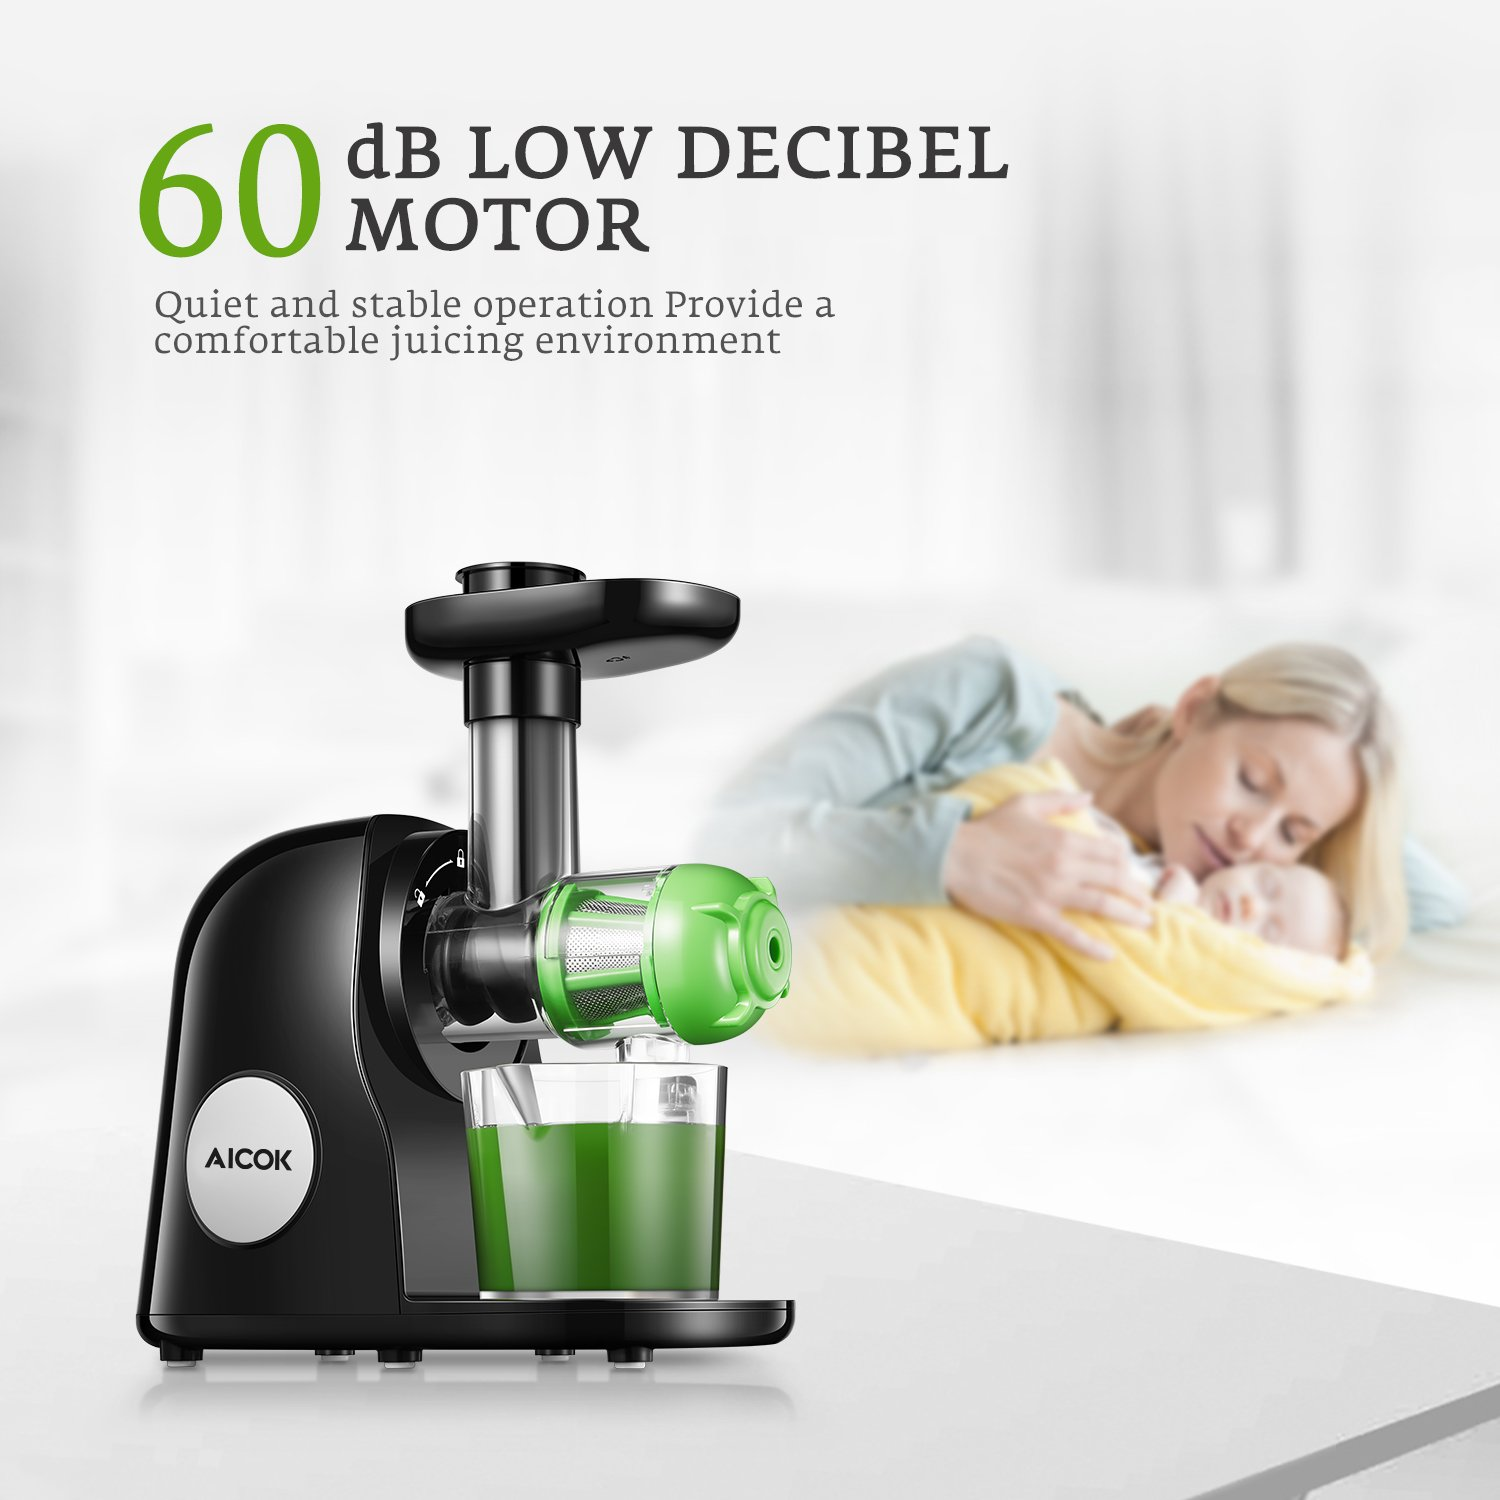 Juicer Masticating Slow Juicer Extractor, Aicok Juice Quiet Motor & Reverse Function, BPA Free, Cold Press Juicer Easy to Clean with Brush, Juice Machine Recipes for Vegetables and Fruits by AICOK (Image #3)